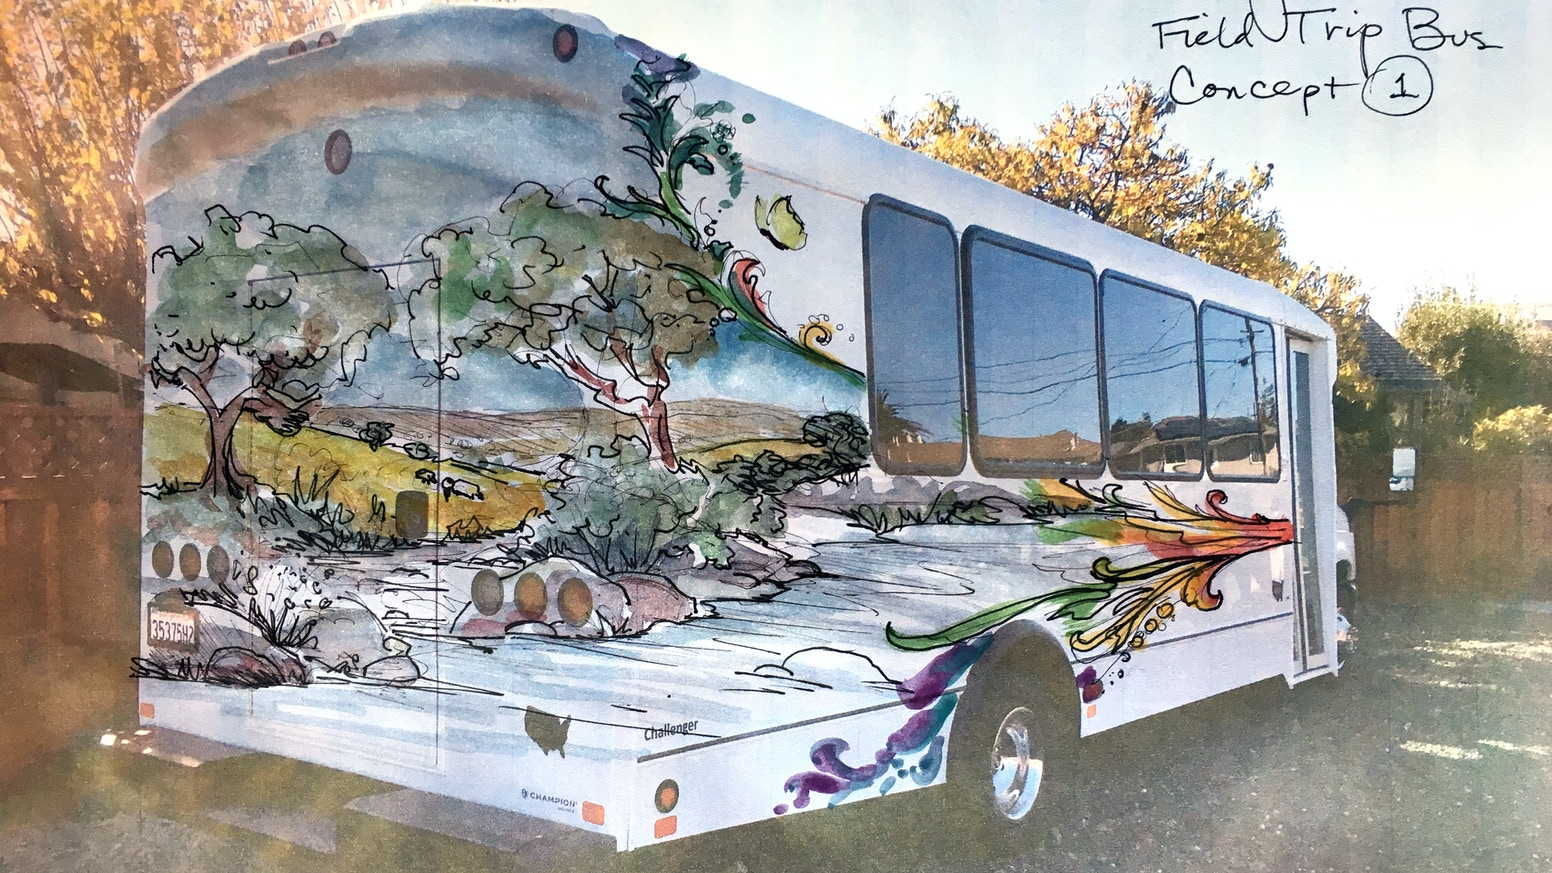 This bus will be painted with custom mural artwork by Morgan Mural Studios. The bus will be used to take economically disadvantaged youth on nature field trips.